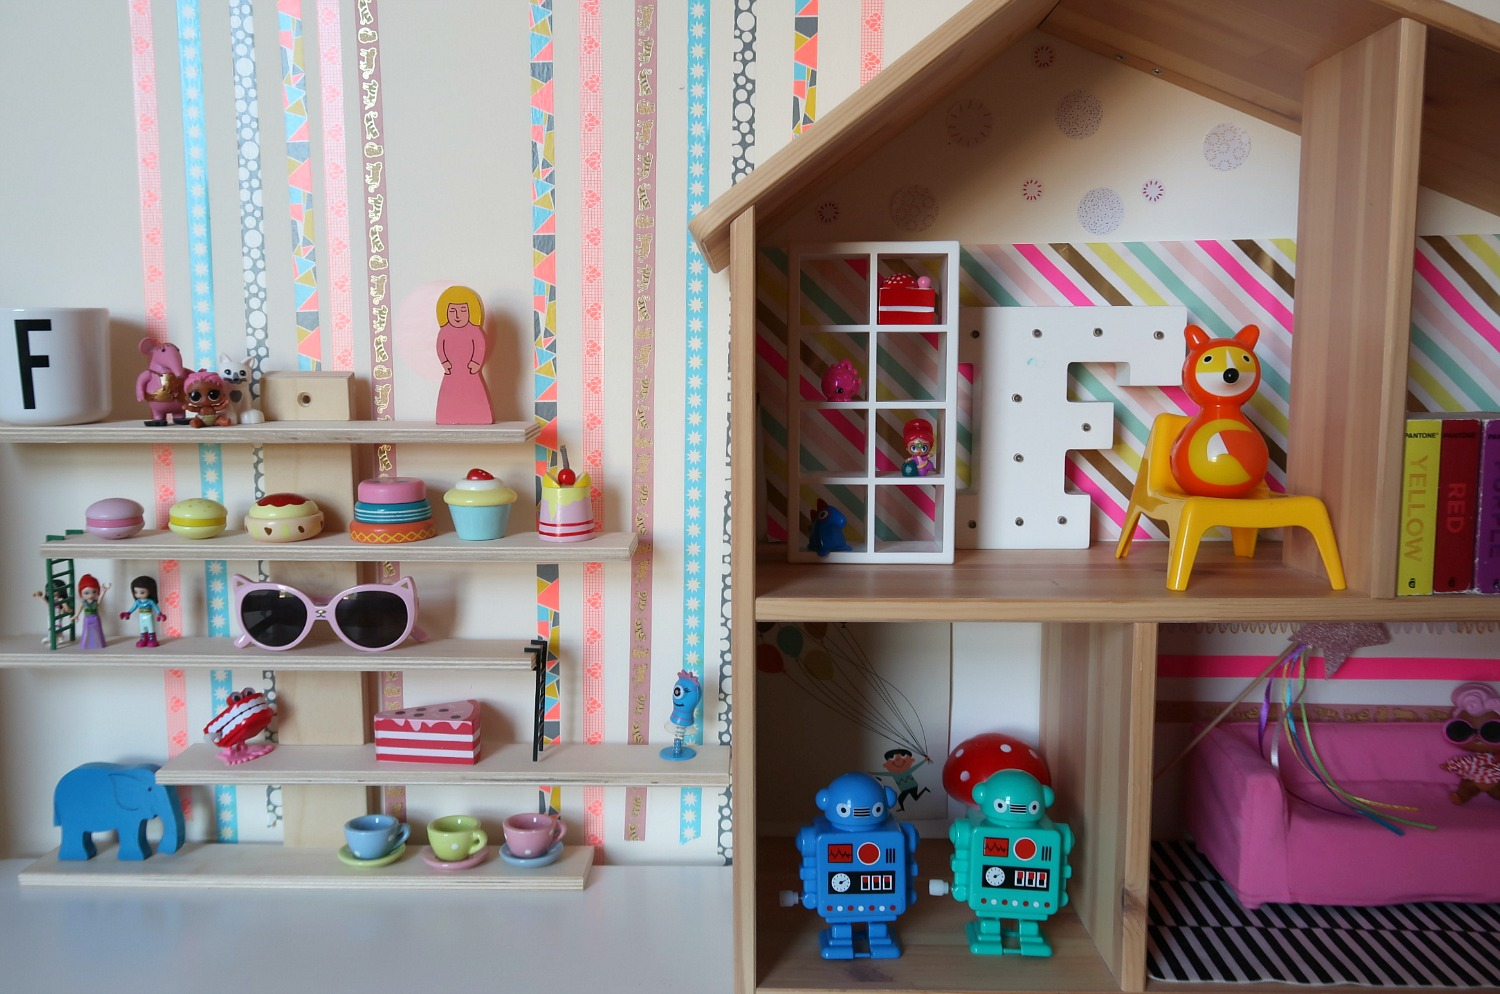 Storage hacks with IKEA Flisat dollshouse storage and IKEA Lugtisgt shelves